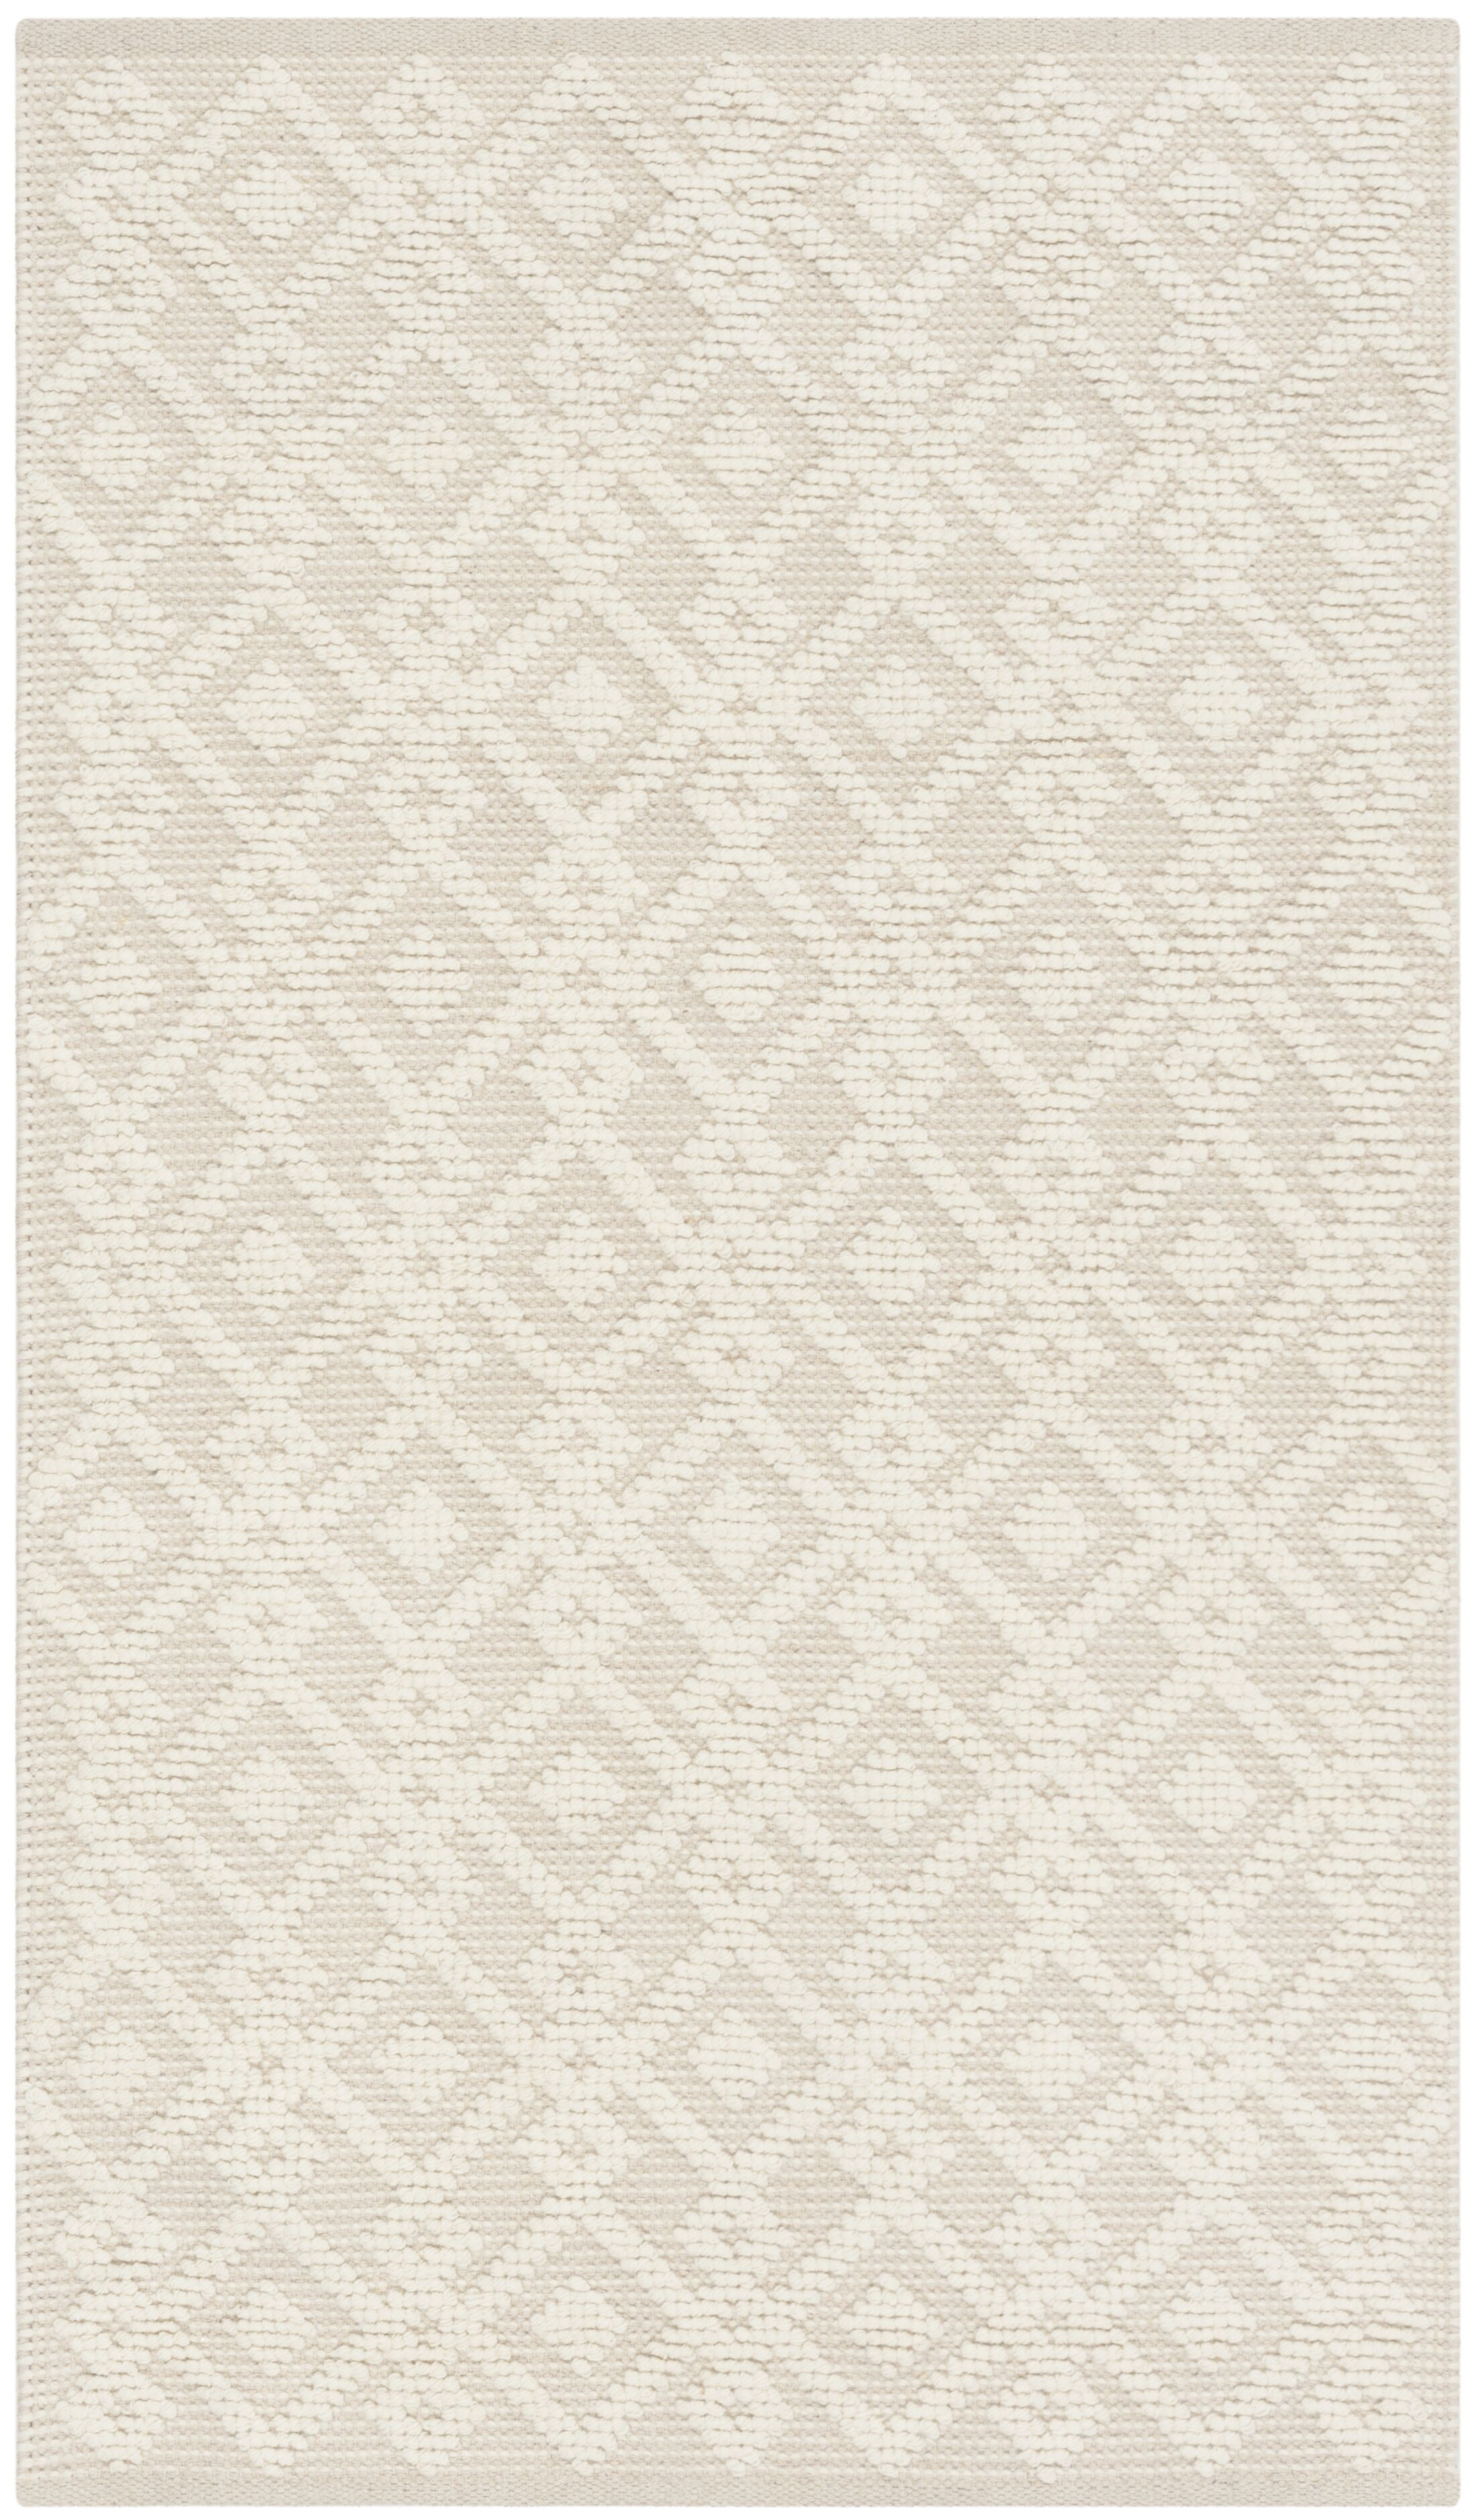 Audrick Hand Tufted Wool Ivory Area Rug Rug Size: Rectangle 5' x 8'